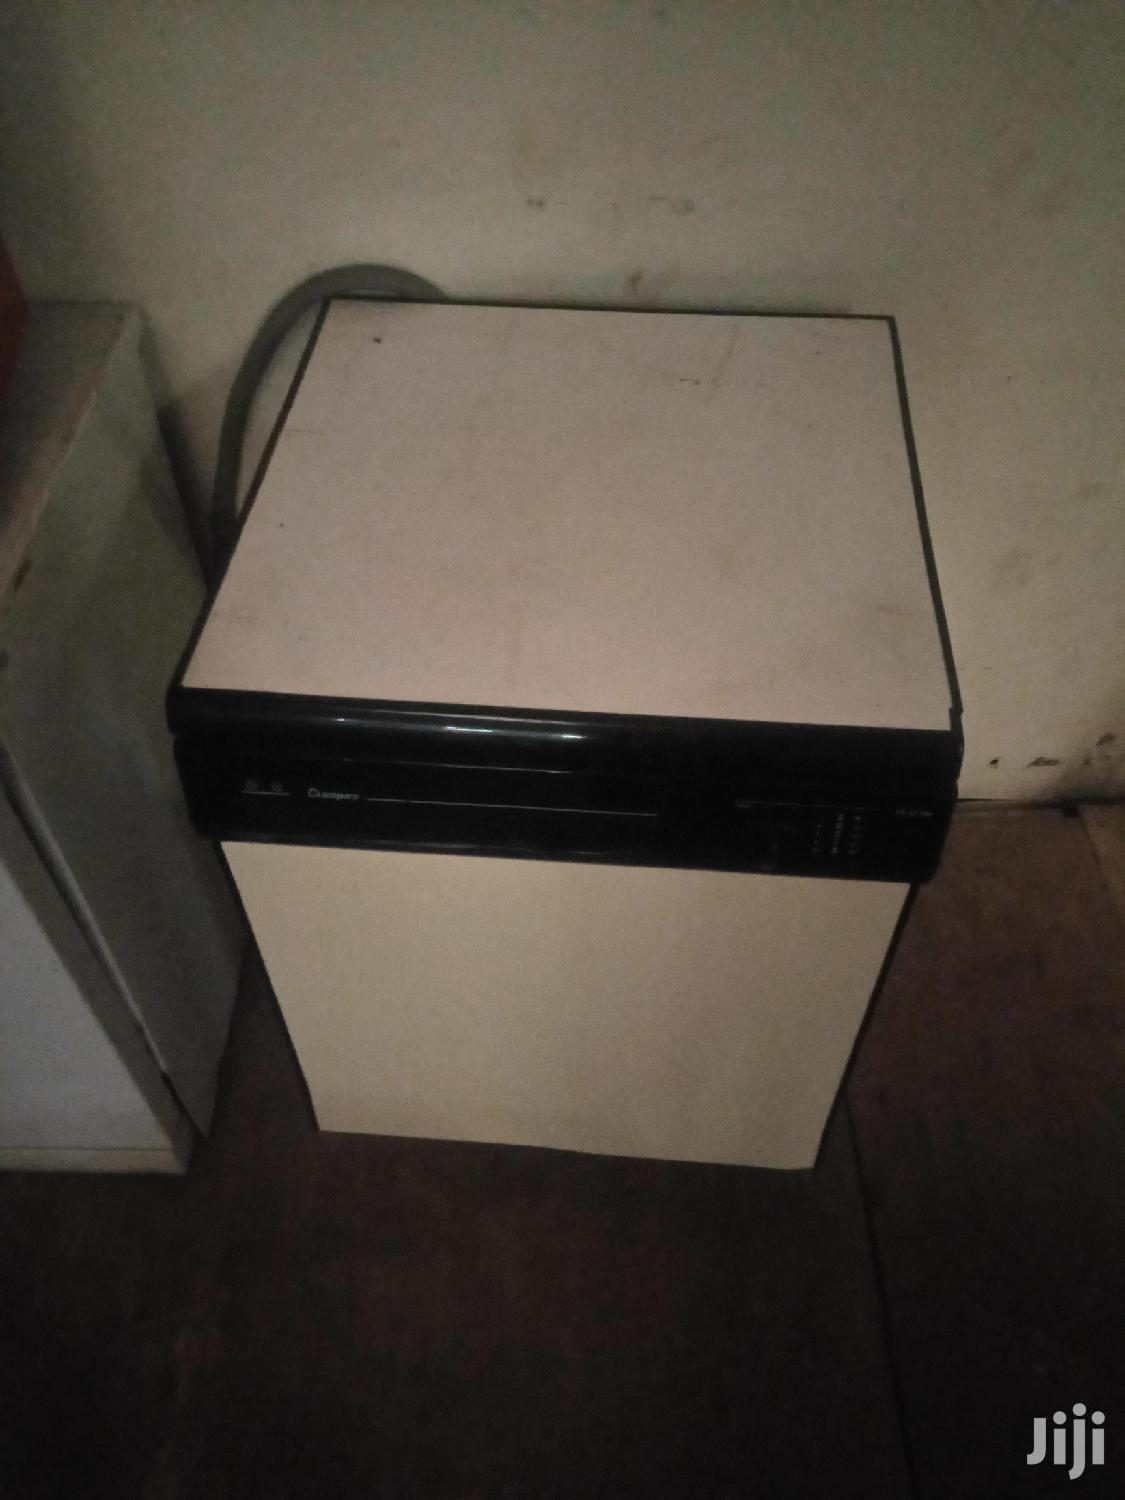 Archive: Aspes Dish Washer